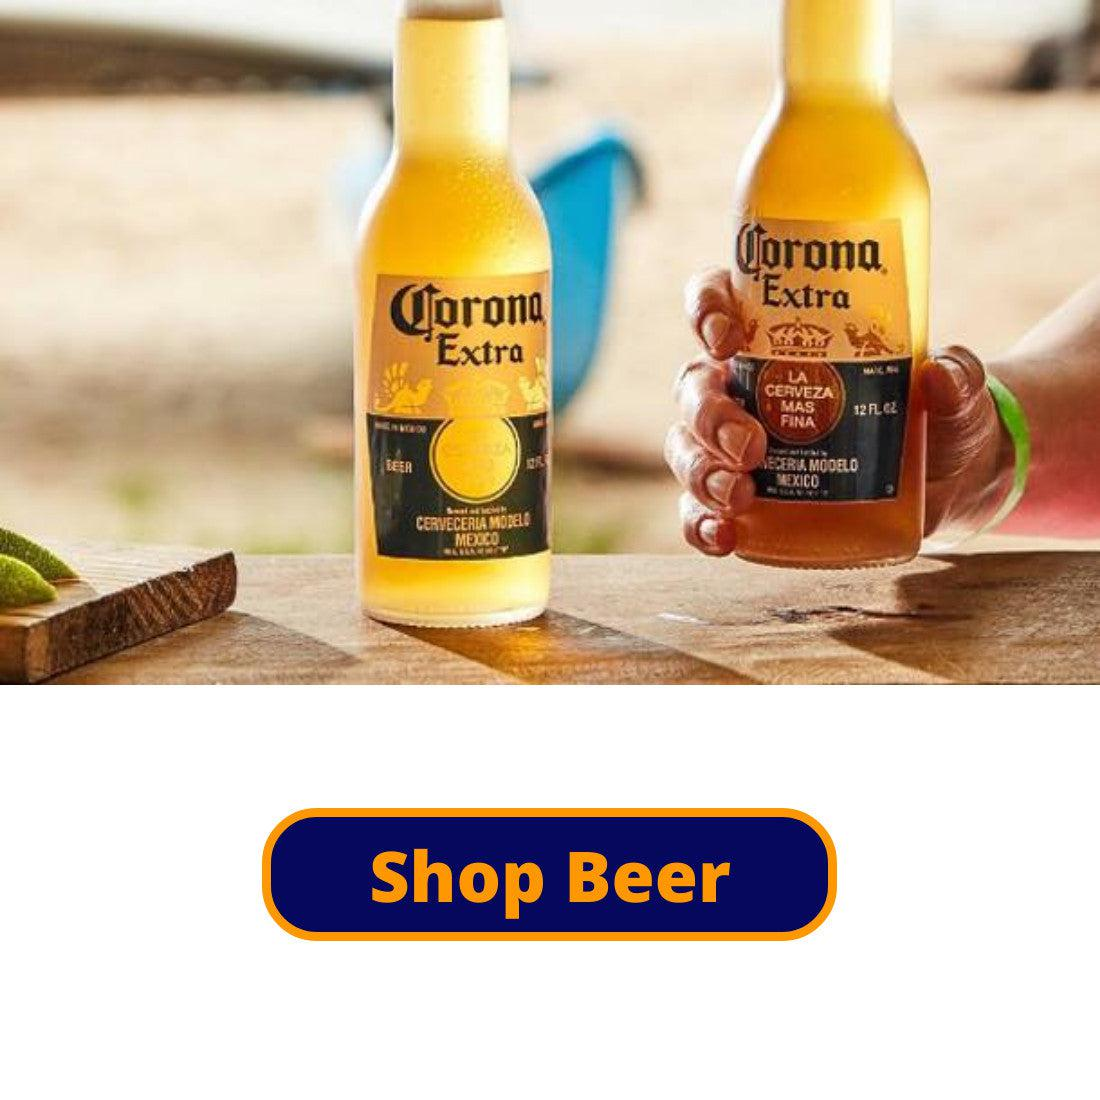 Corona-Beer-Delivery-App-Australia-Booze-Online-Marketplace-Hello-Drinks